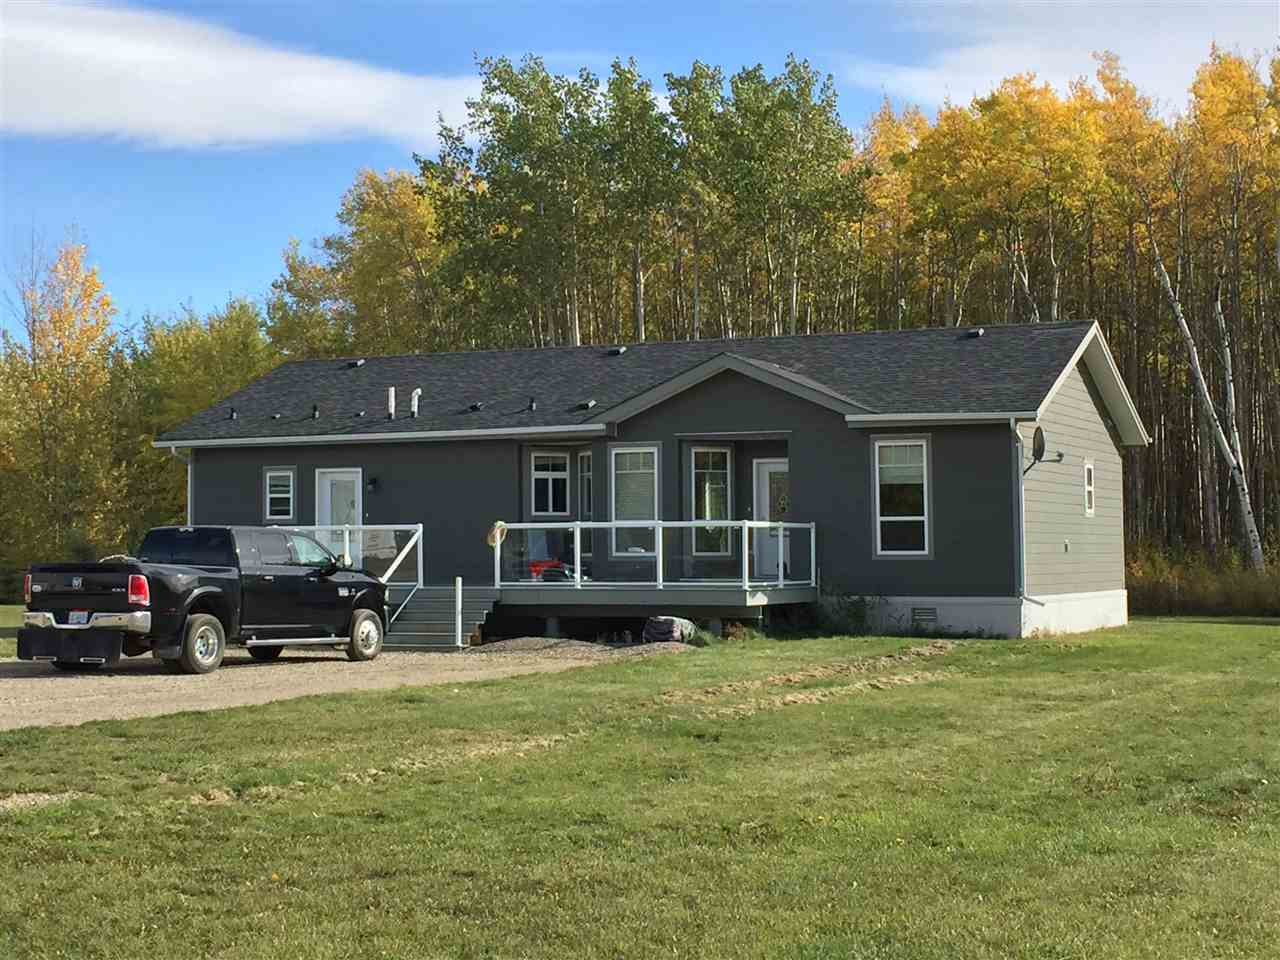 Main Photo: 9808 MAPLE Street in FT ST JOHN: Fort St. John - Rural W 100th Manufactured Home for sale (Fort St. John (Zone 60))  : MLS® # R2002304